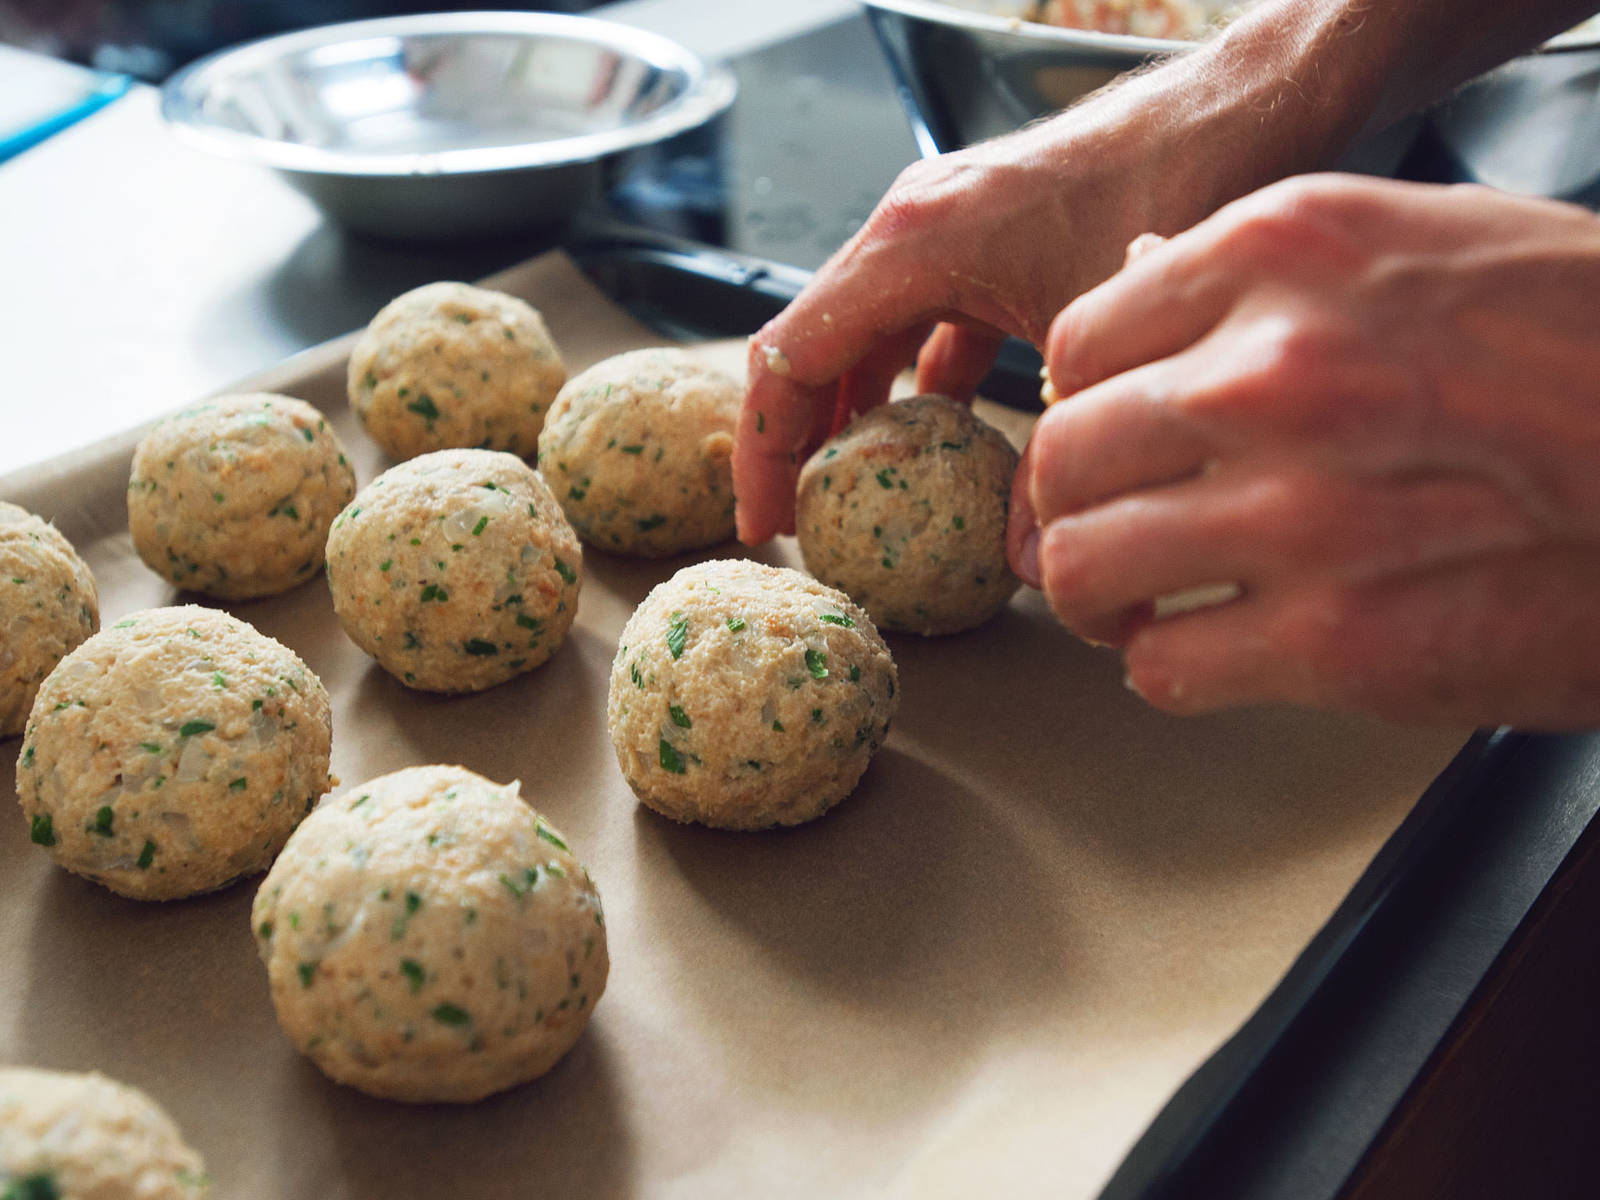 When test dumpling succeeds, form balls out of remaining dough and place them on a baking sheet lined with parchment paper. Add all bread dumplings to saucepan, being careful to arrange them so that they don't lie on top of each other. Let them simmer for approx. 20 min. Pay attention that water doesn't boil again.